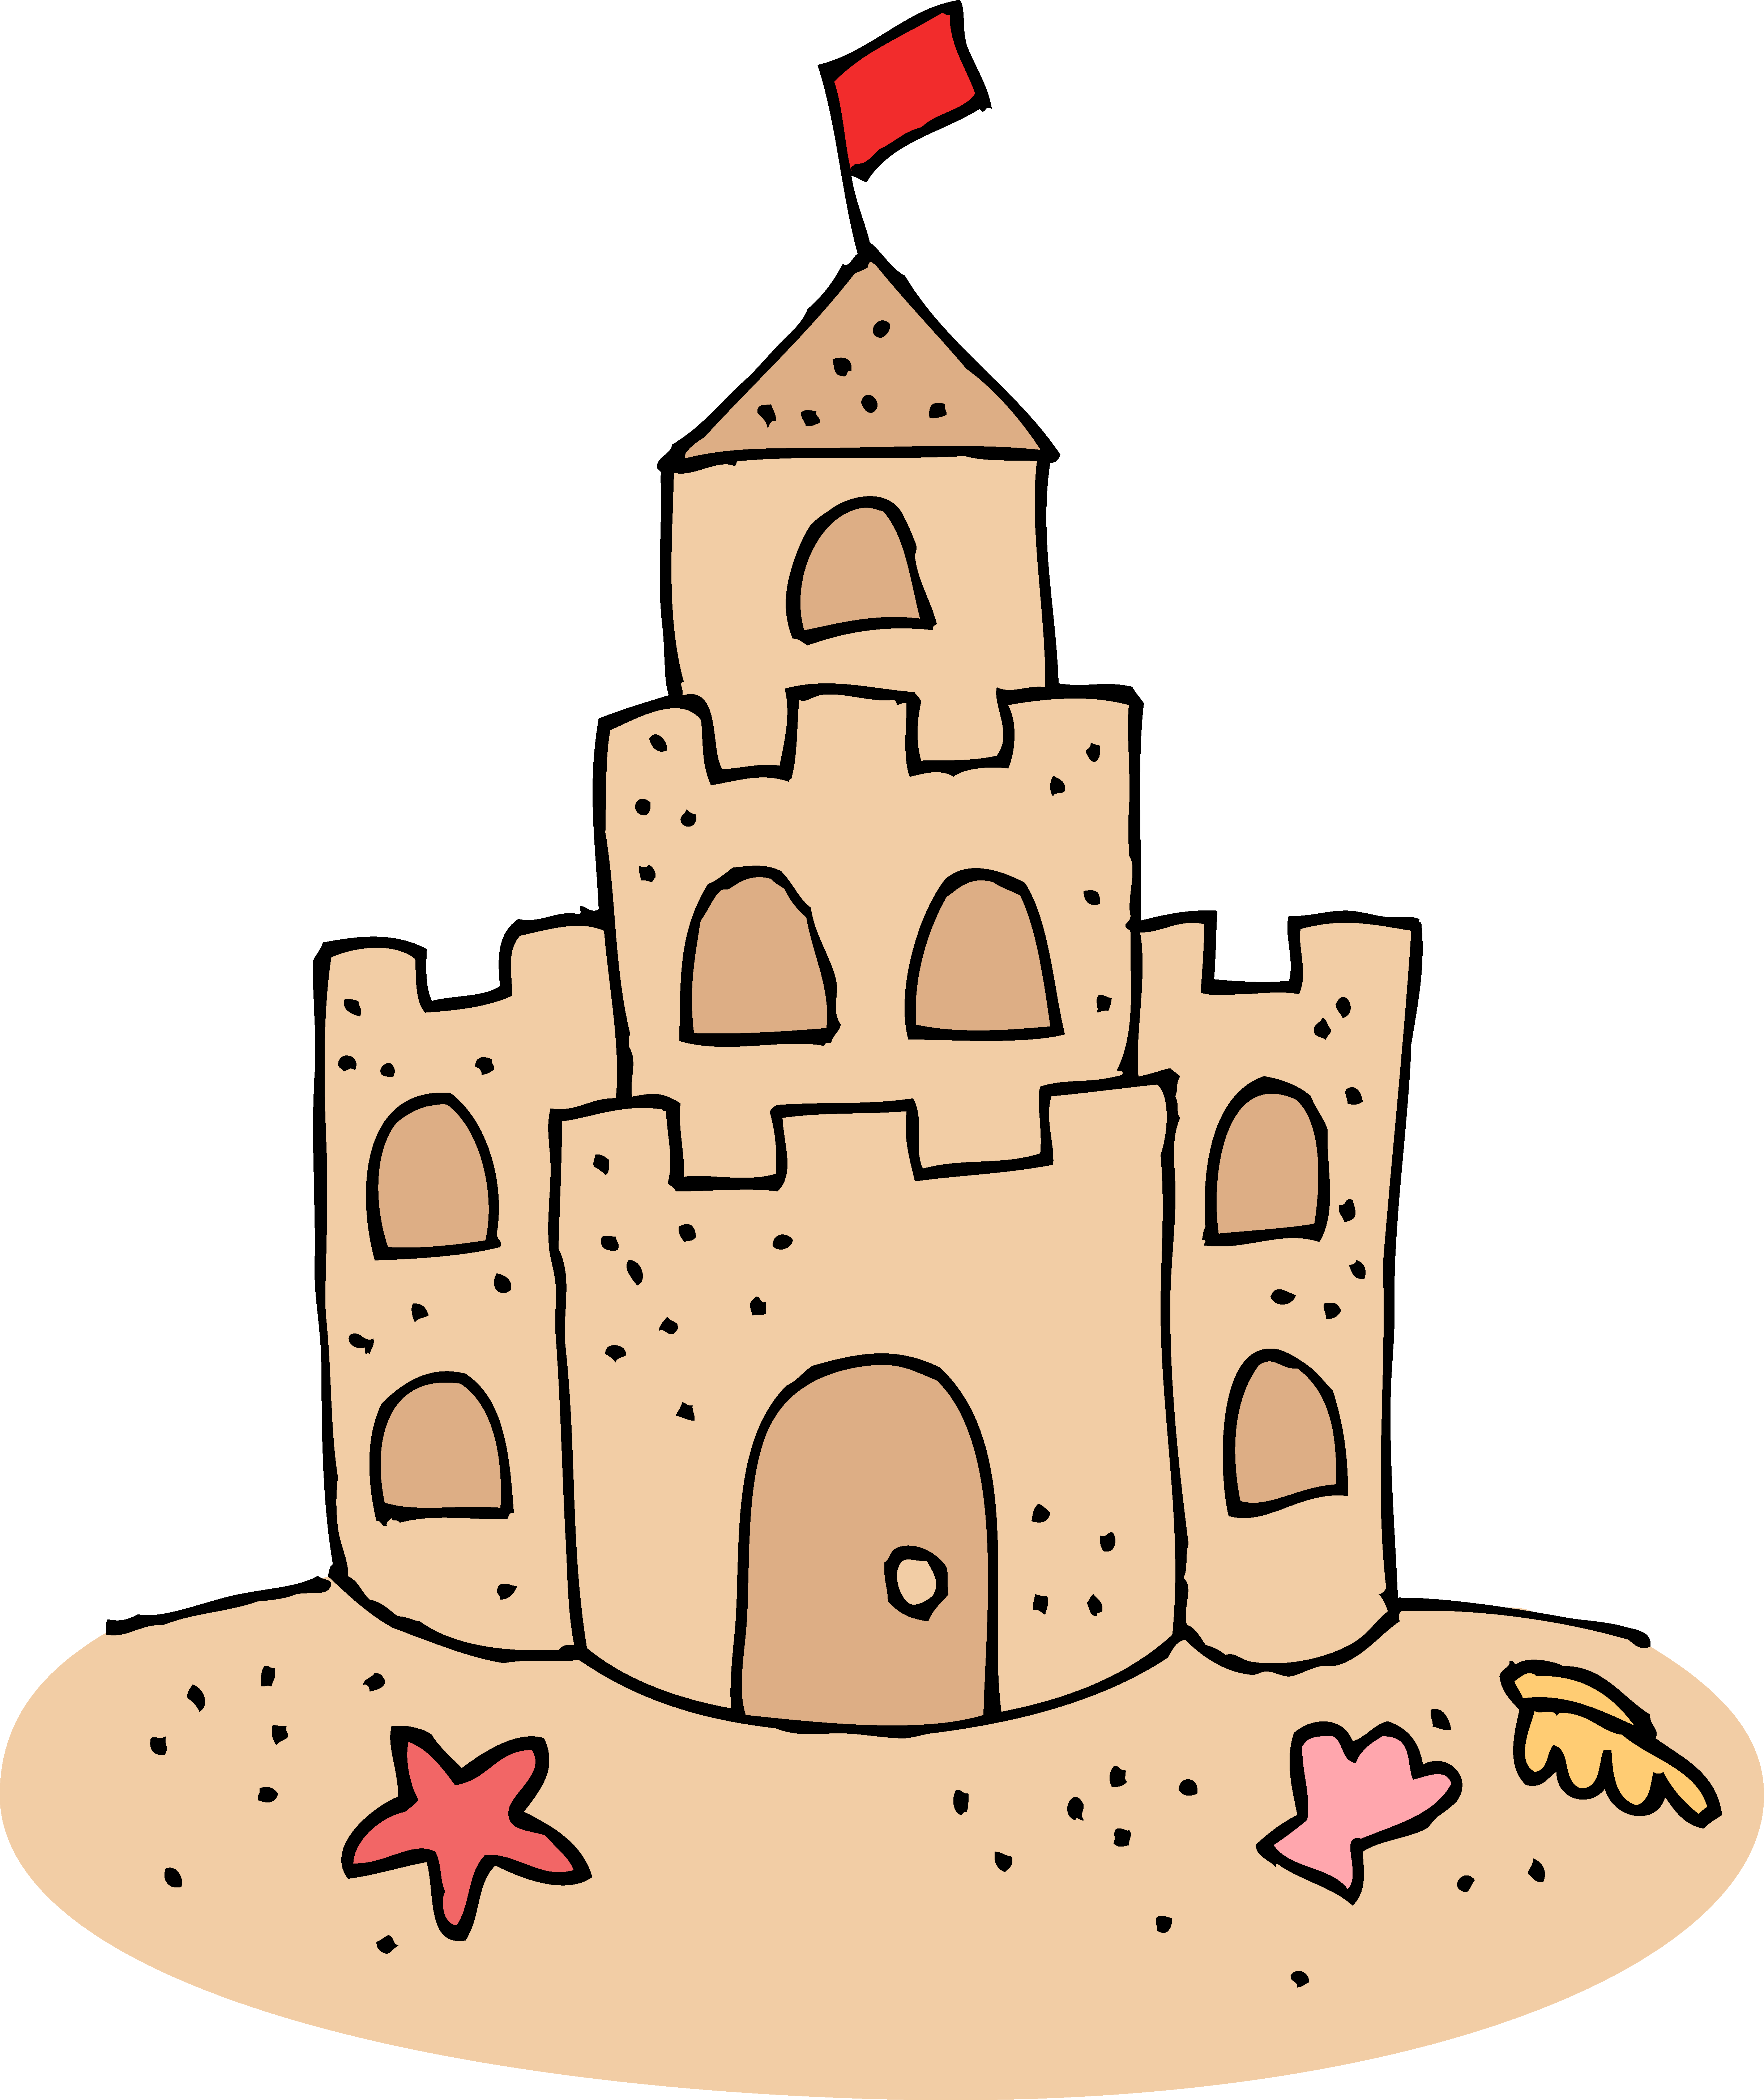 Building sandcastle clipart.